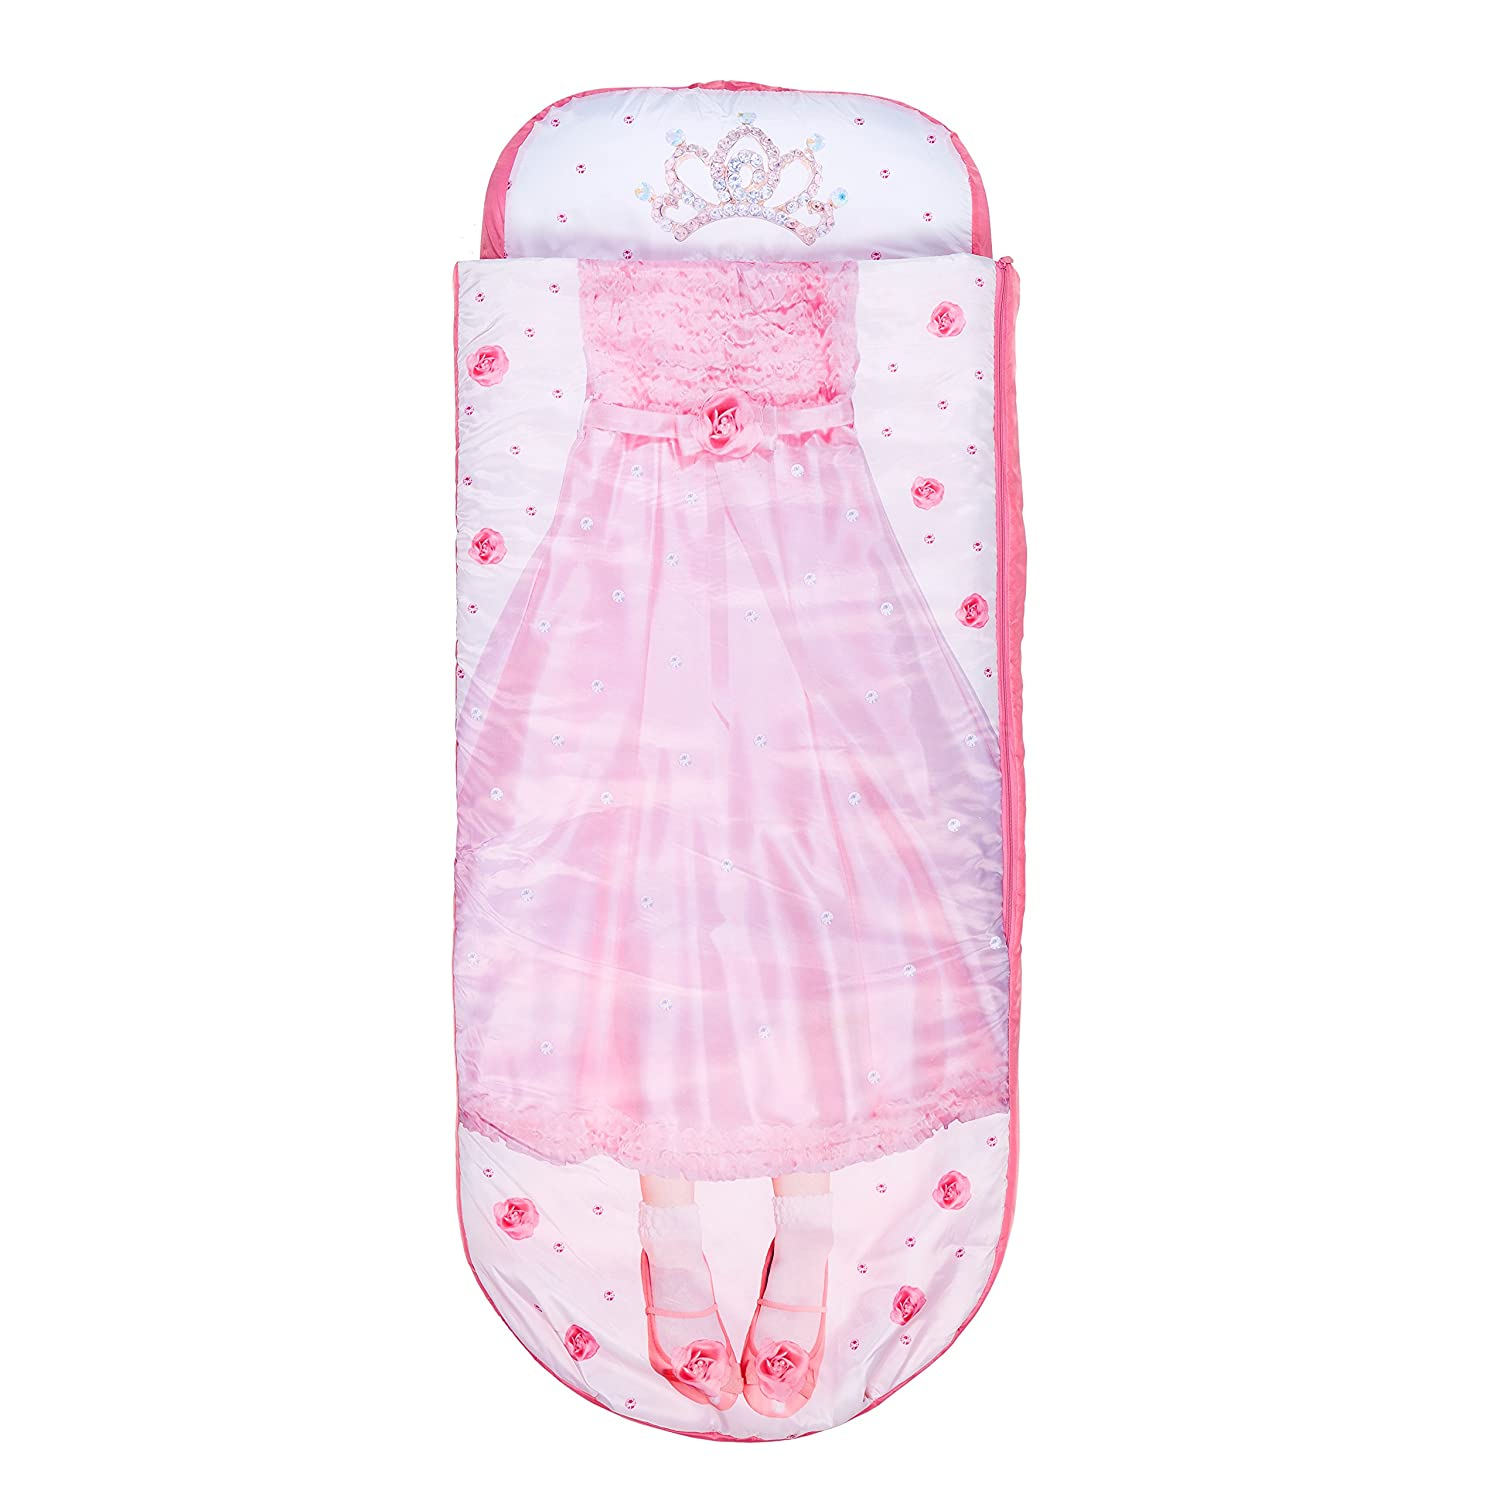 Readybed JR, Hearts by Worlds Apart, Ages 3-6 Years